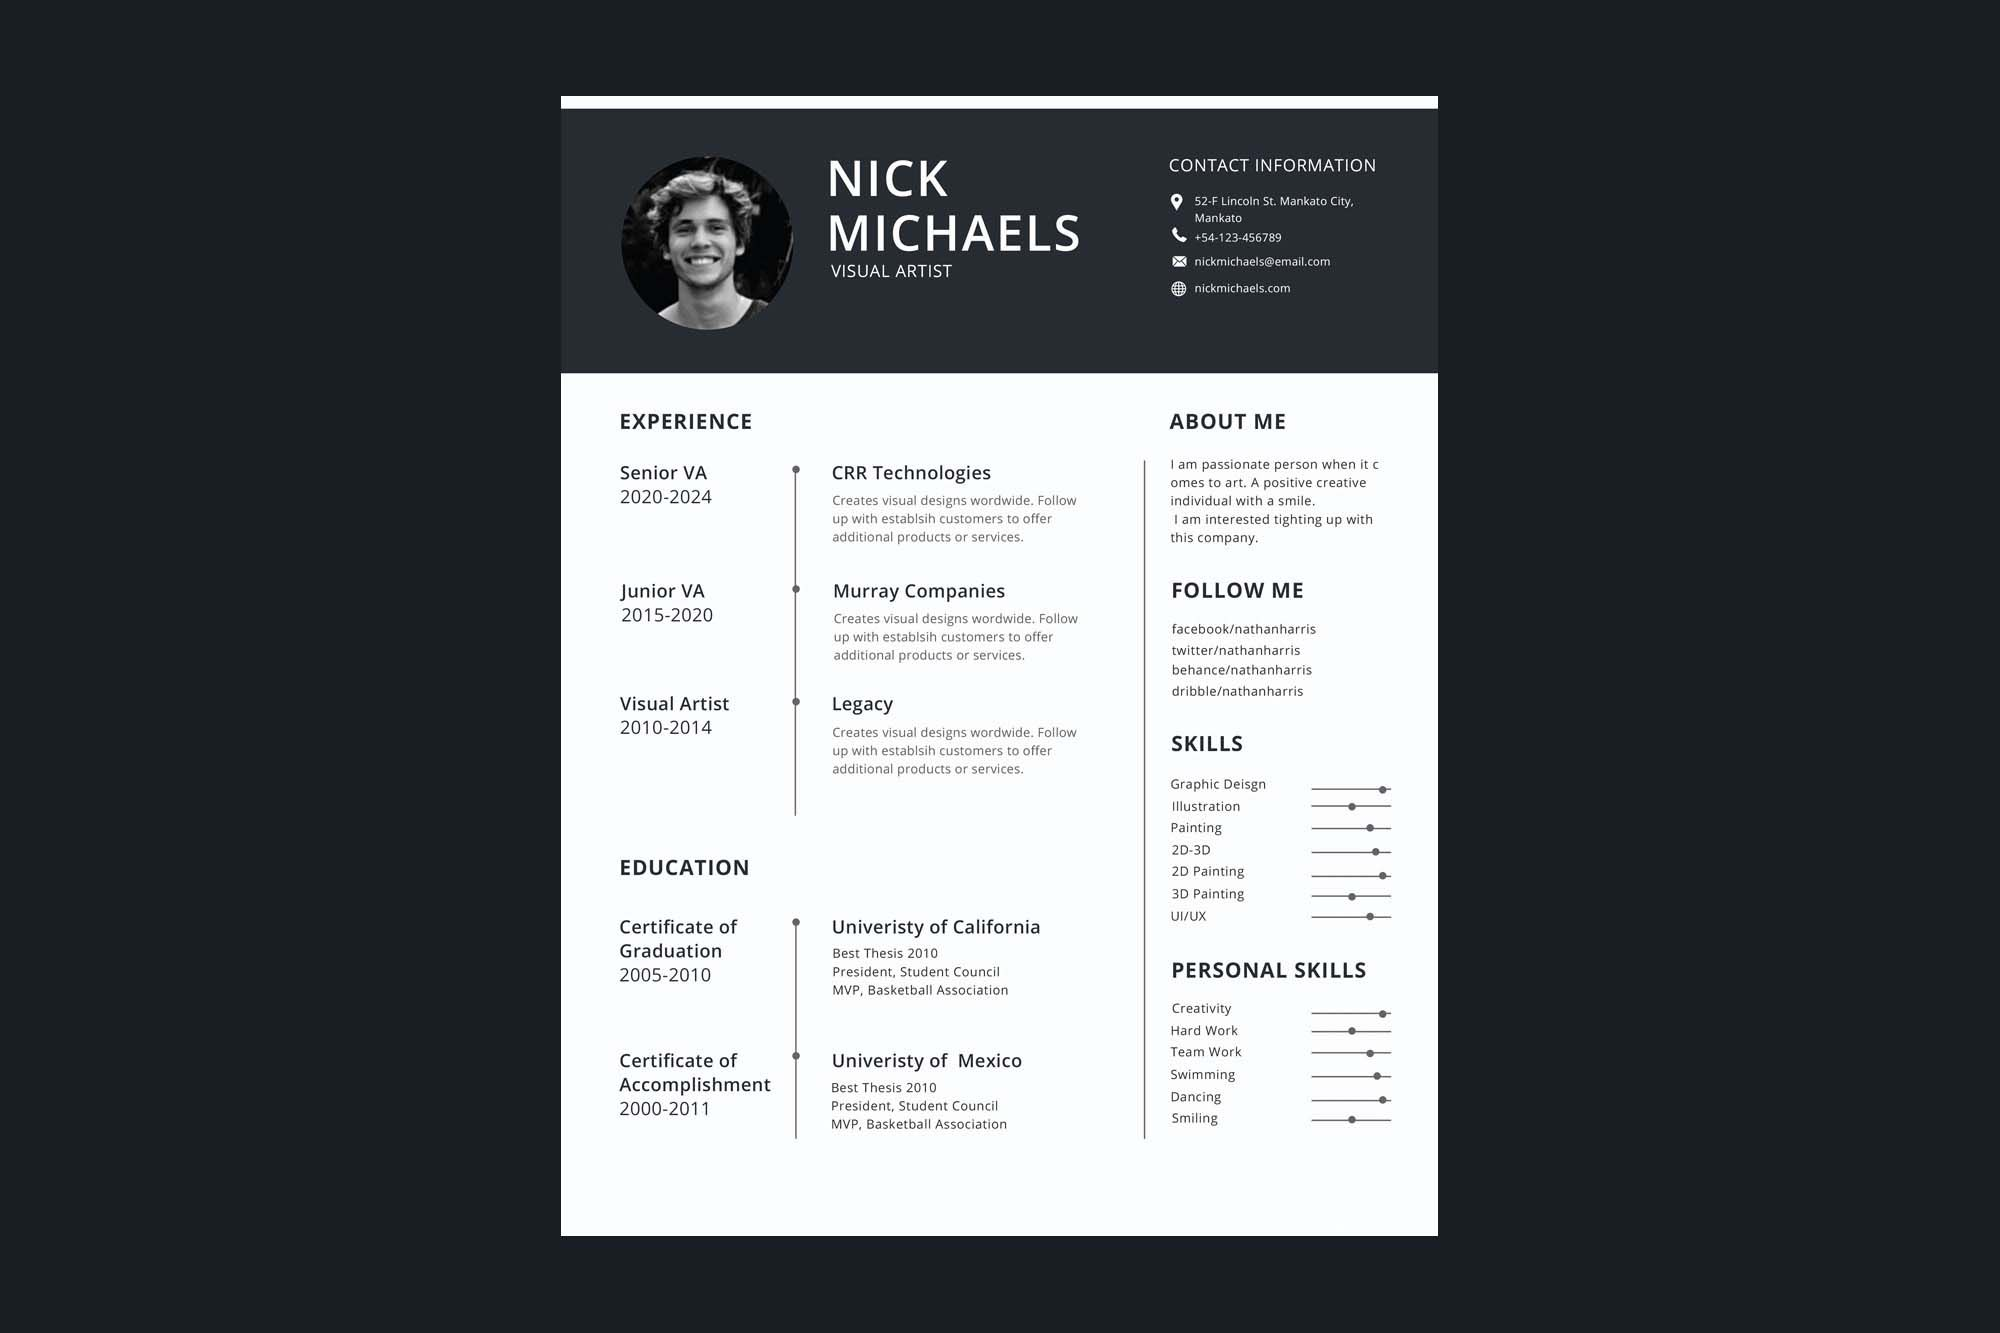 006 Formidable 1 Page Resume Template Highest Quality  Templates One Basic Word Free Html DownloadFull